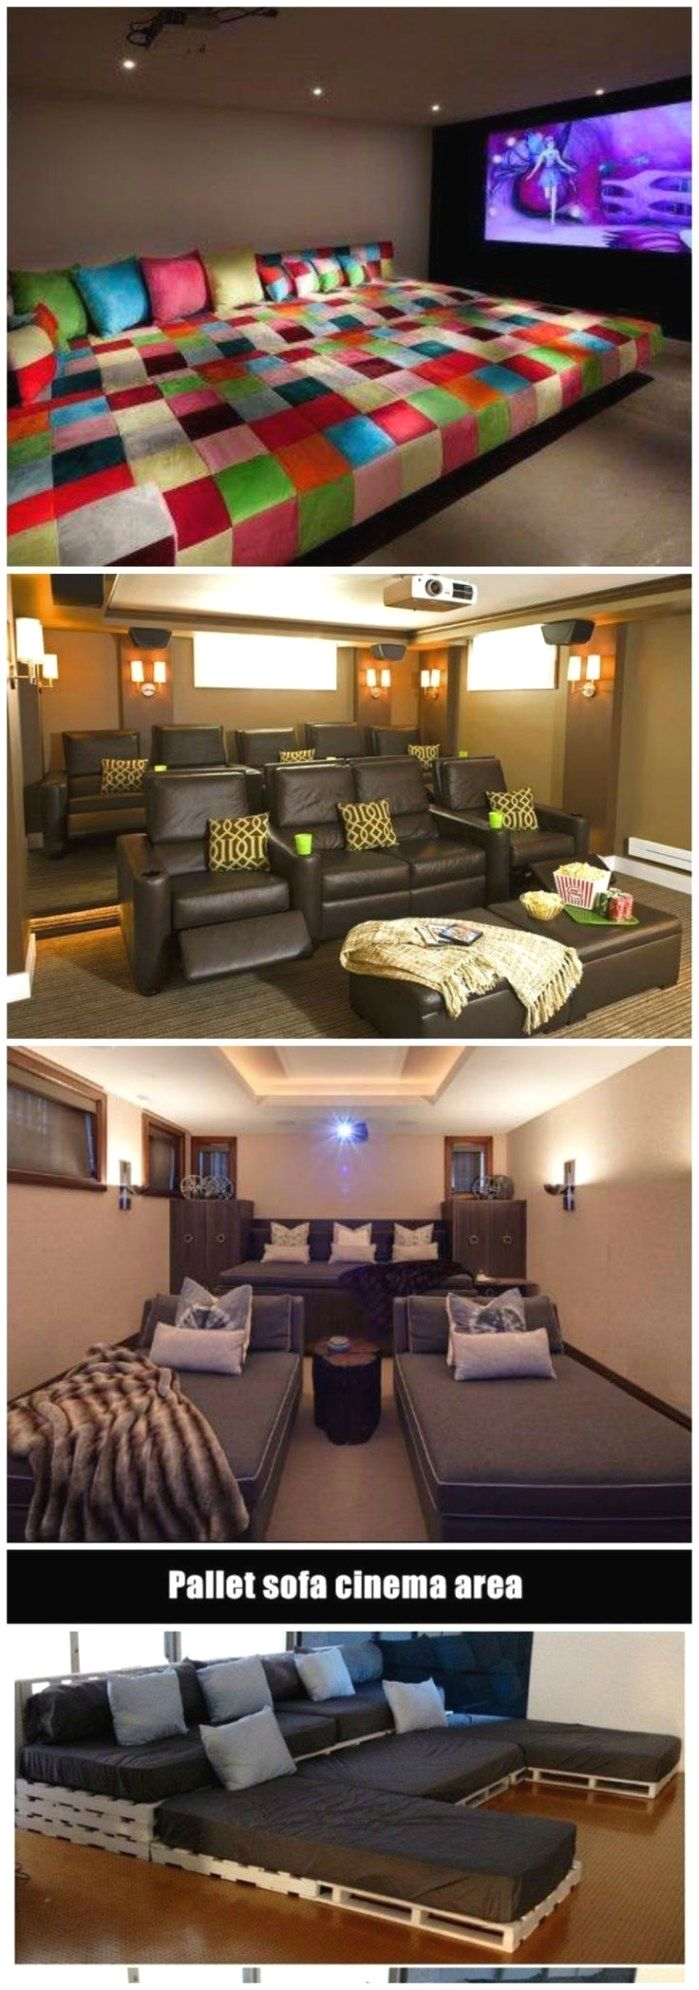 More ideas below diy home theater decorations basement rooms red seating small speakers luxury also best media room images cinema theaters theatre rh pinterest